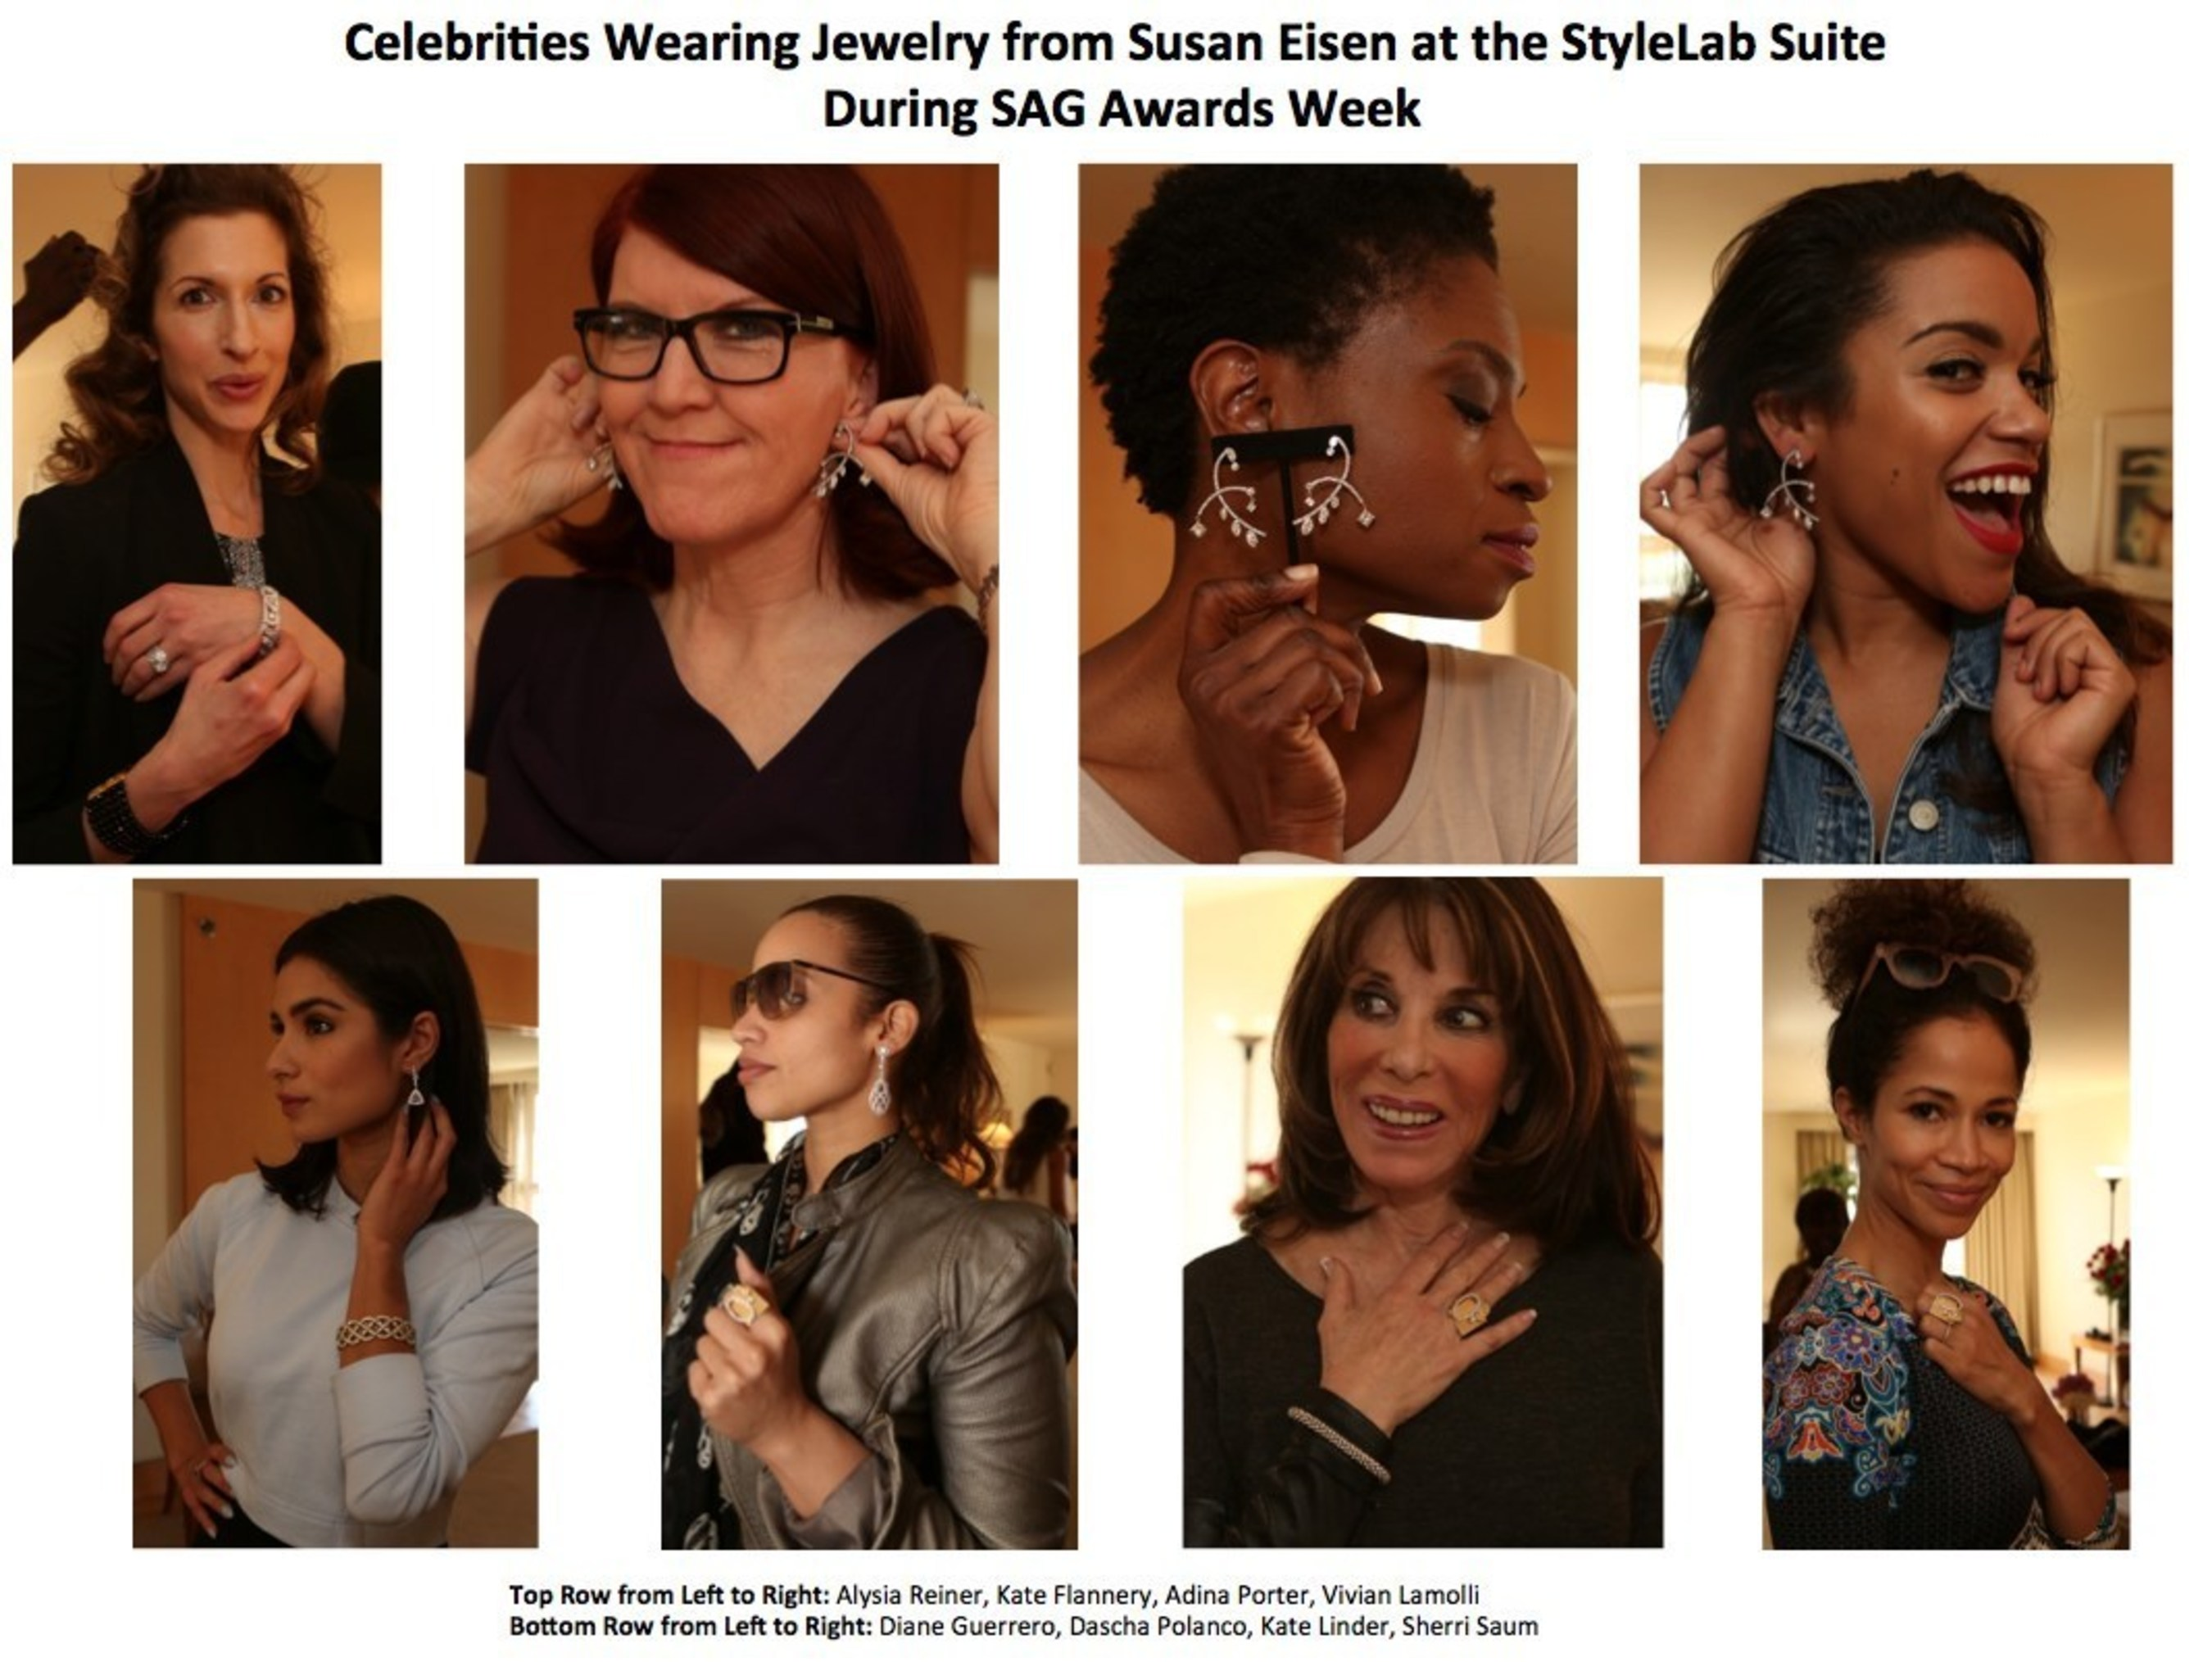 Celebrities And Their Stylists Previewed Jewelry From Susan Eisen At StyleLab's Suite During SAG